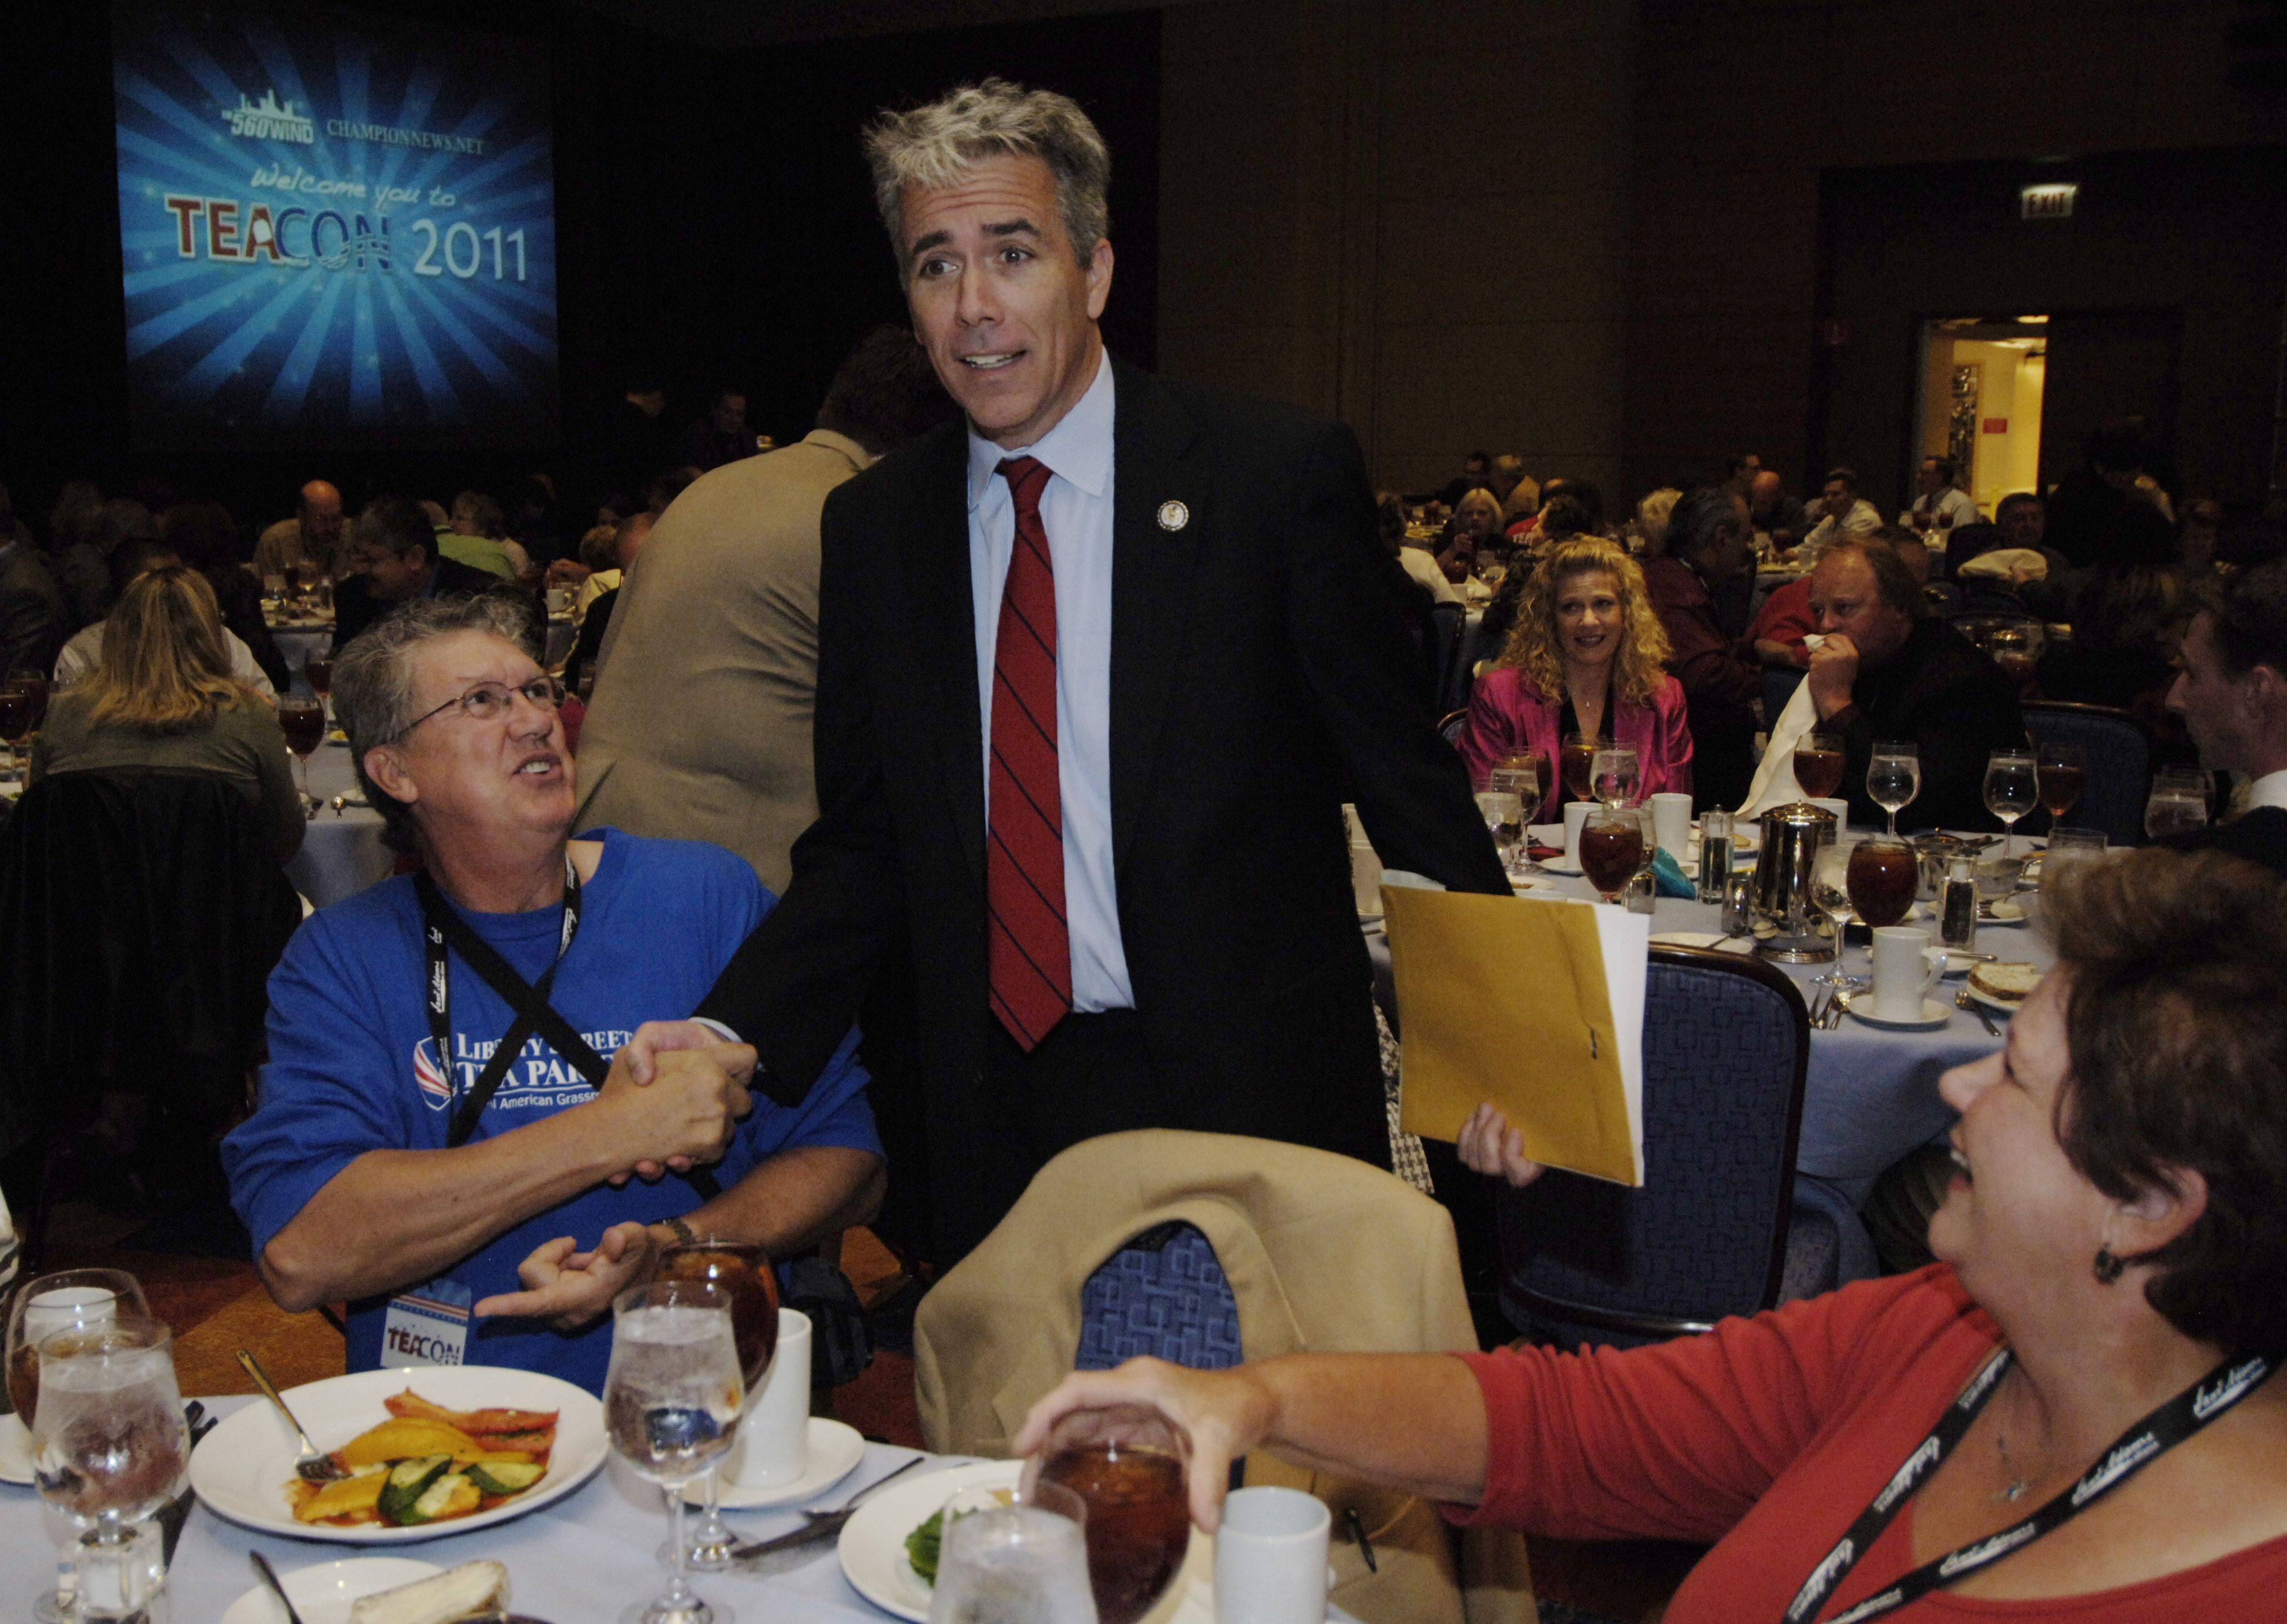 Congressman Joe Walsh is greeted by supporters, including Glen Rowe, left, of Wauconda, during TeaCon, the Midwest Tea Party Convention, at the Renaissance Hotel in Schaumburg Saturday.